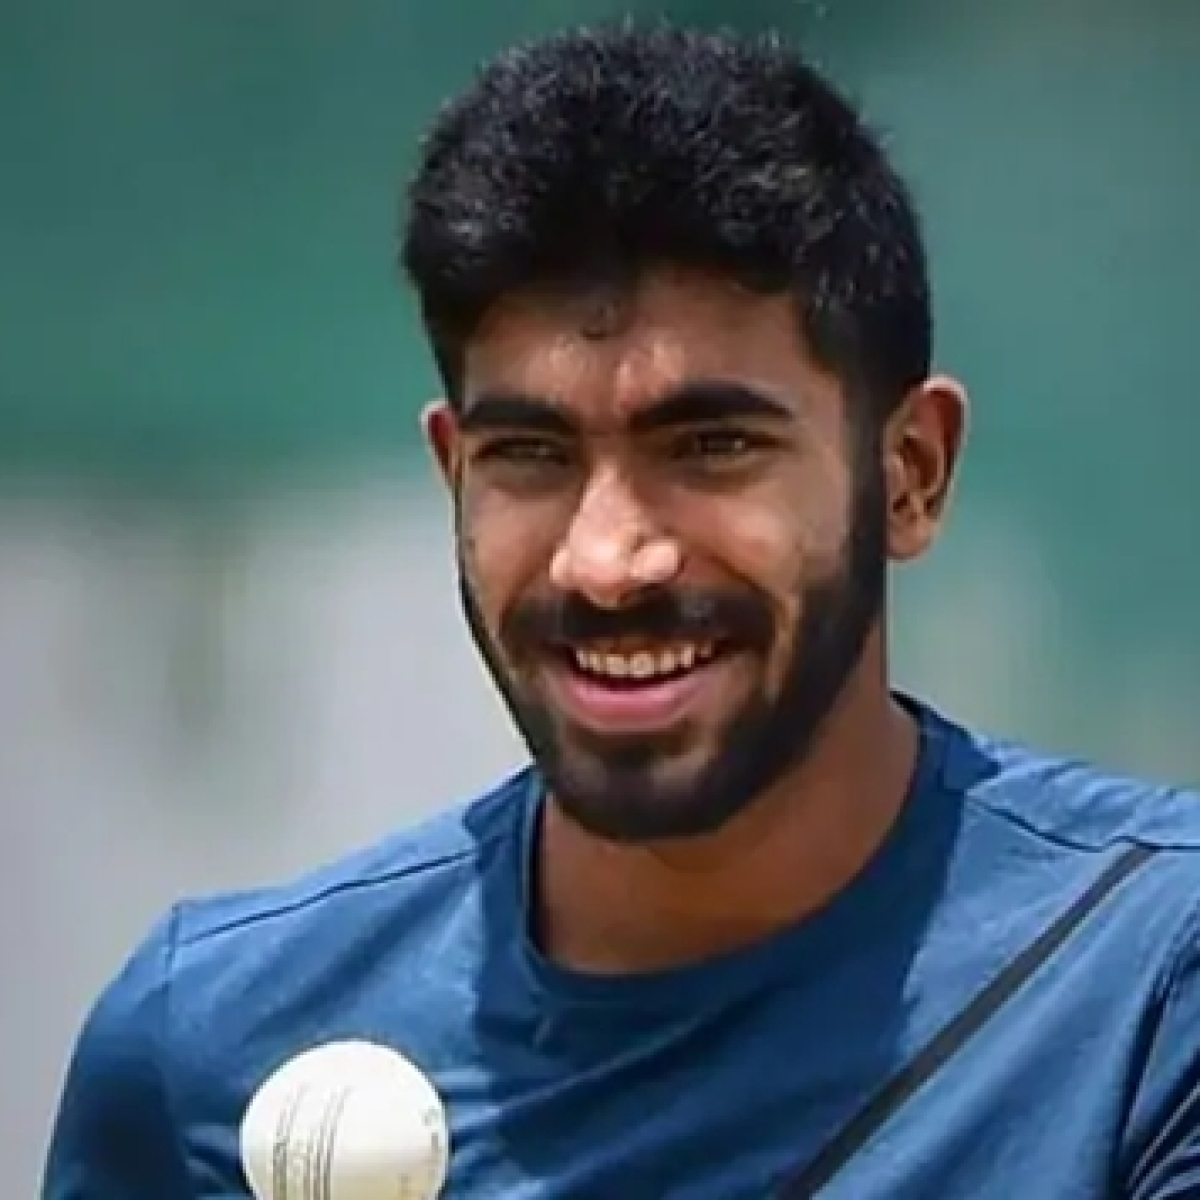 BCCI President Sourav Ganguly keeps protocol aside, asks Jasprit Bumrah to skip Ranji game